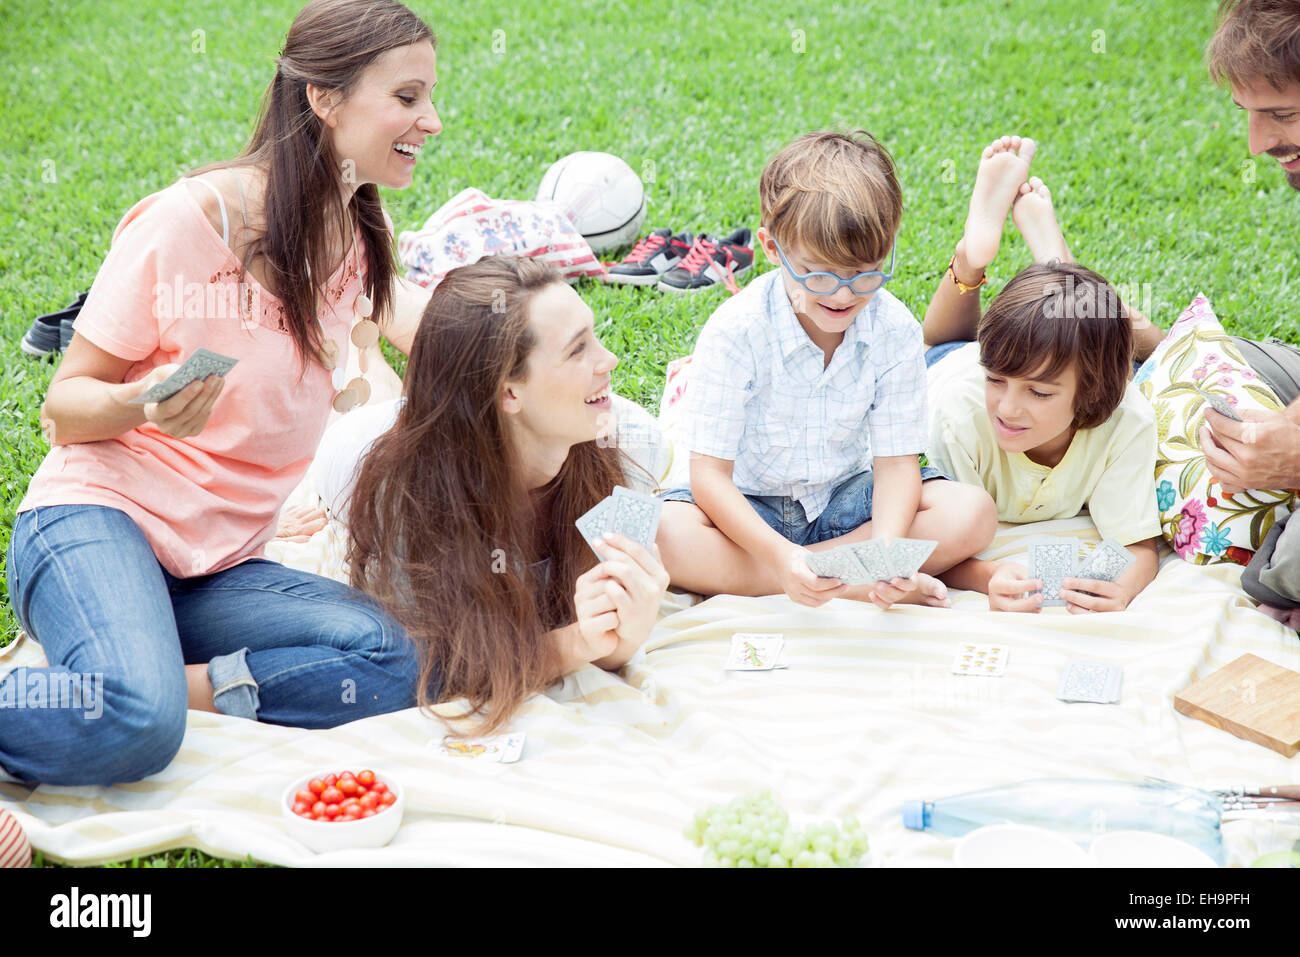 Family having picnic and playing card game - Stock Image